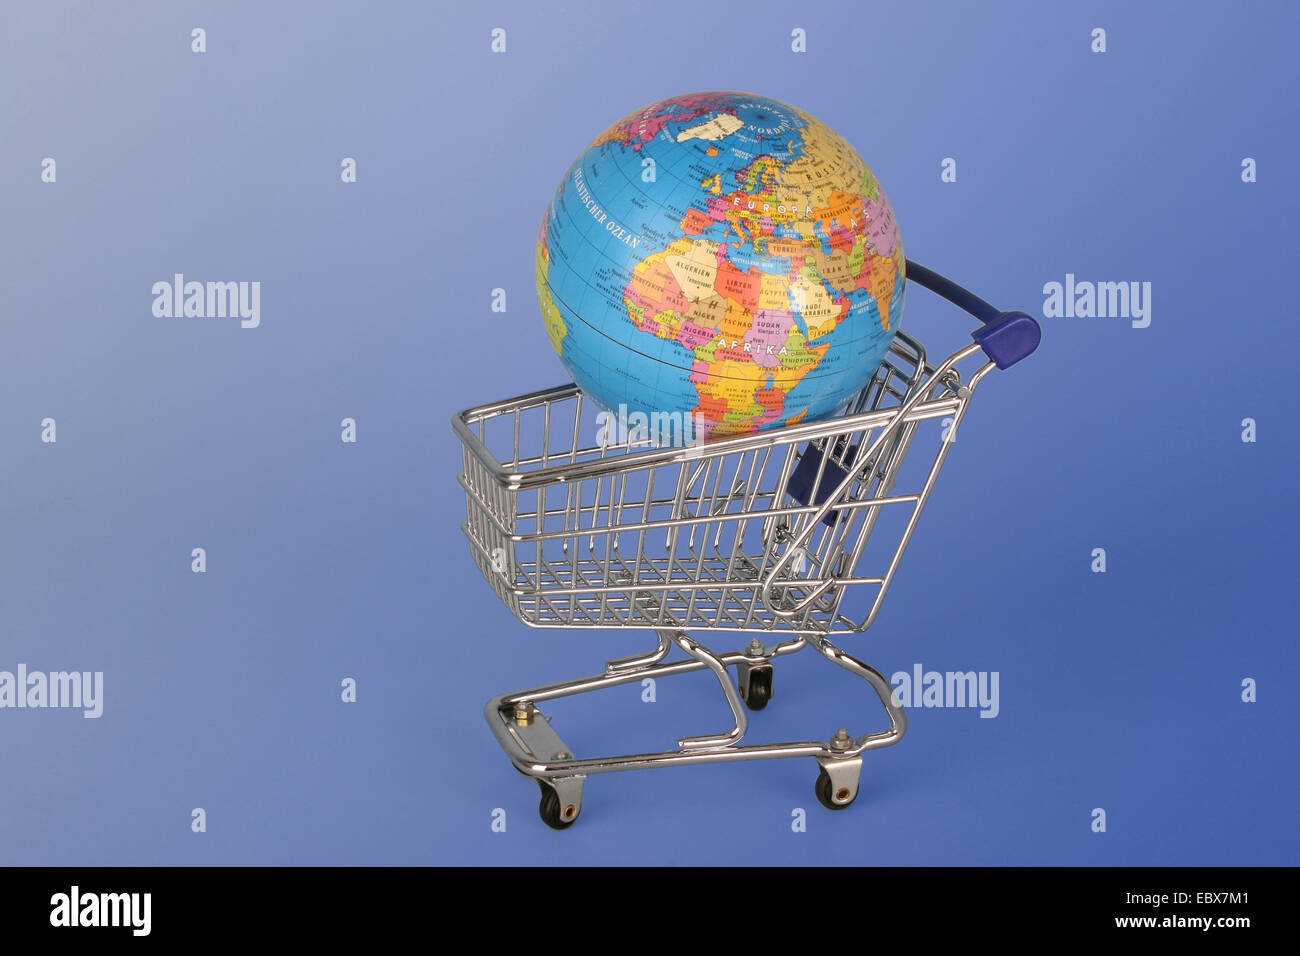 cart with a globe - Stock Image